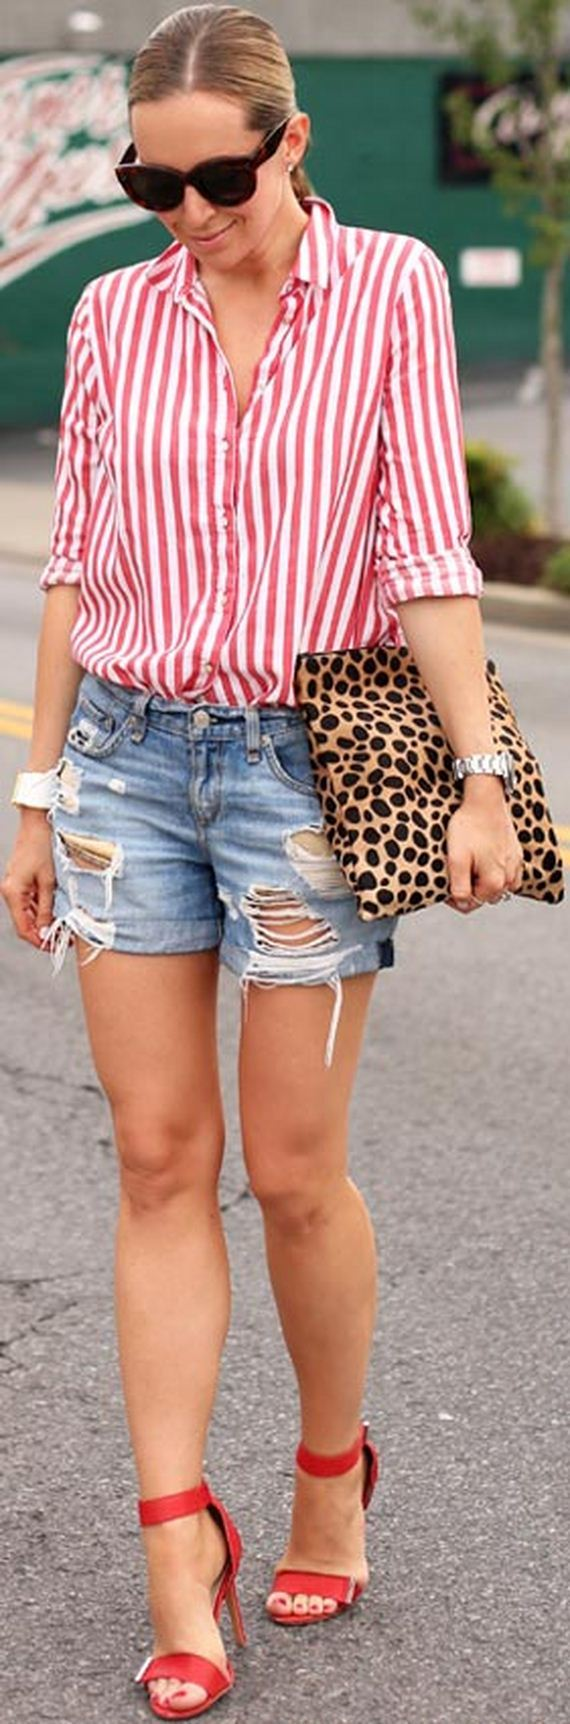 20-Cute-Summer-Outfits